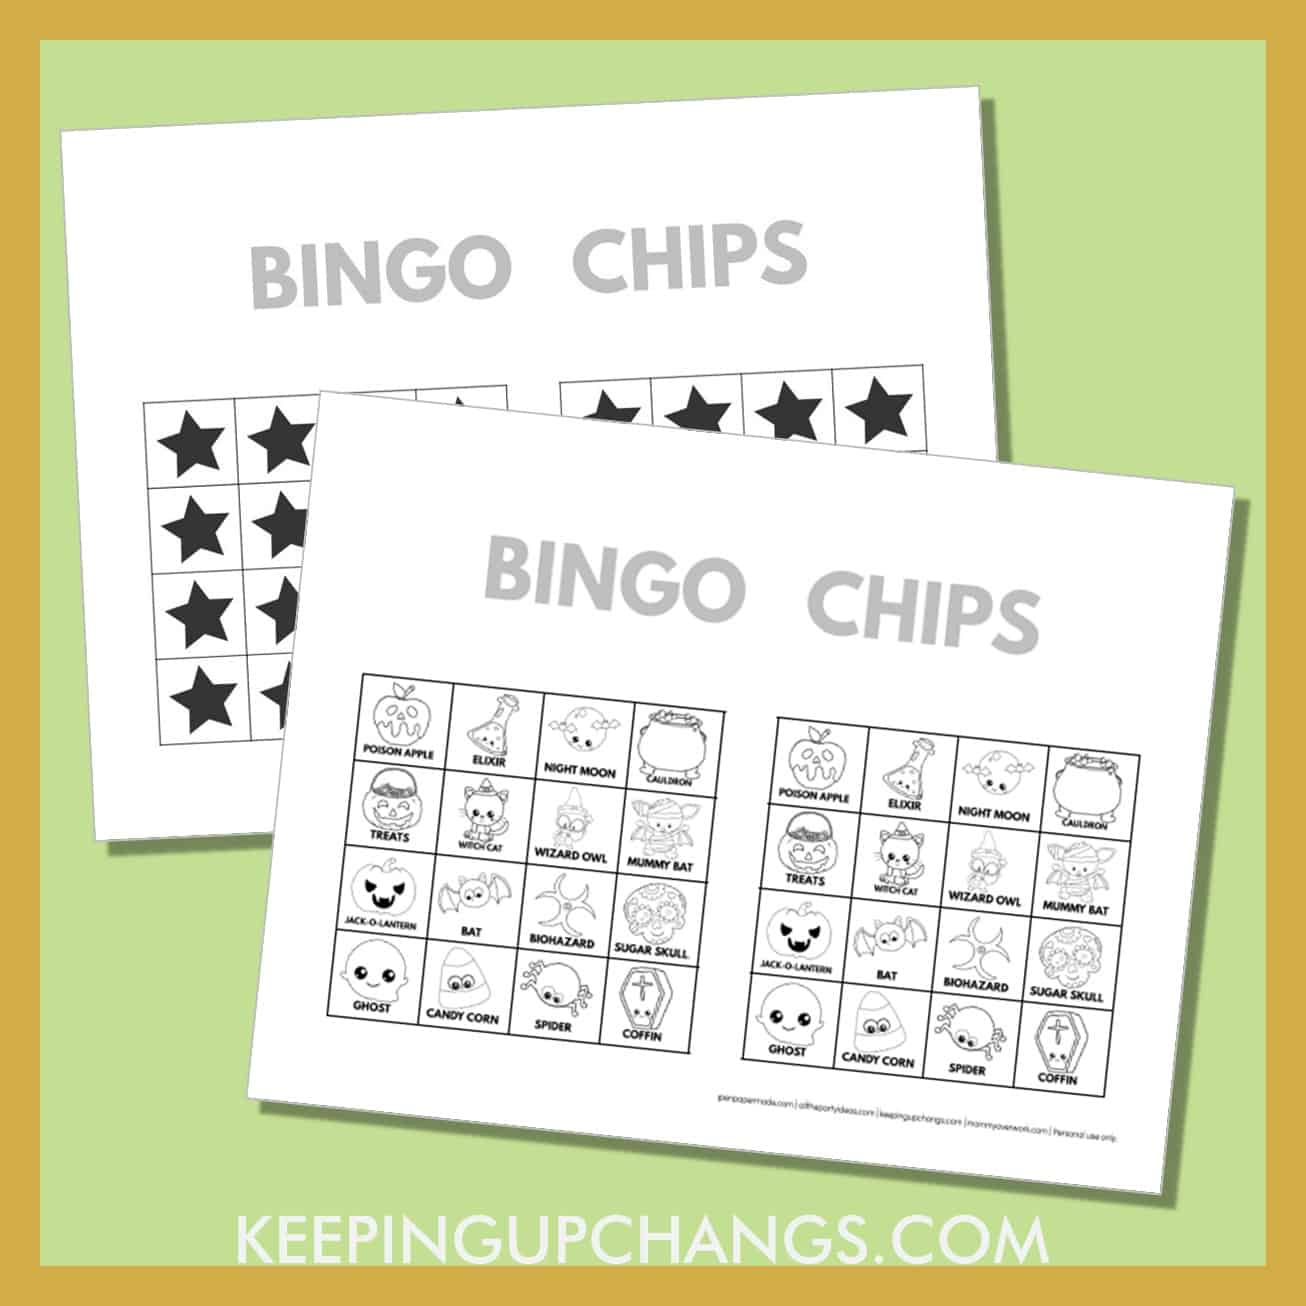 free fall halloween bingo card 4x4 black white coloring game chips, tokens, markers.